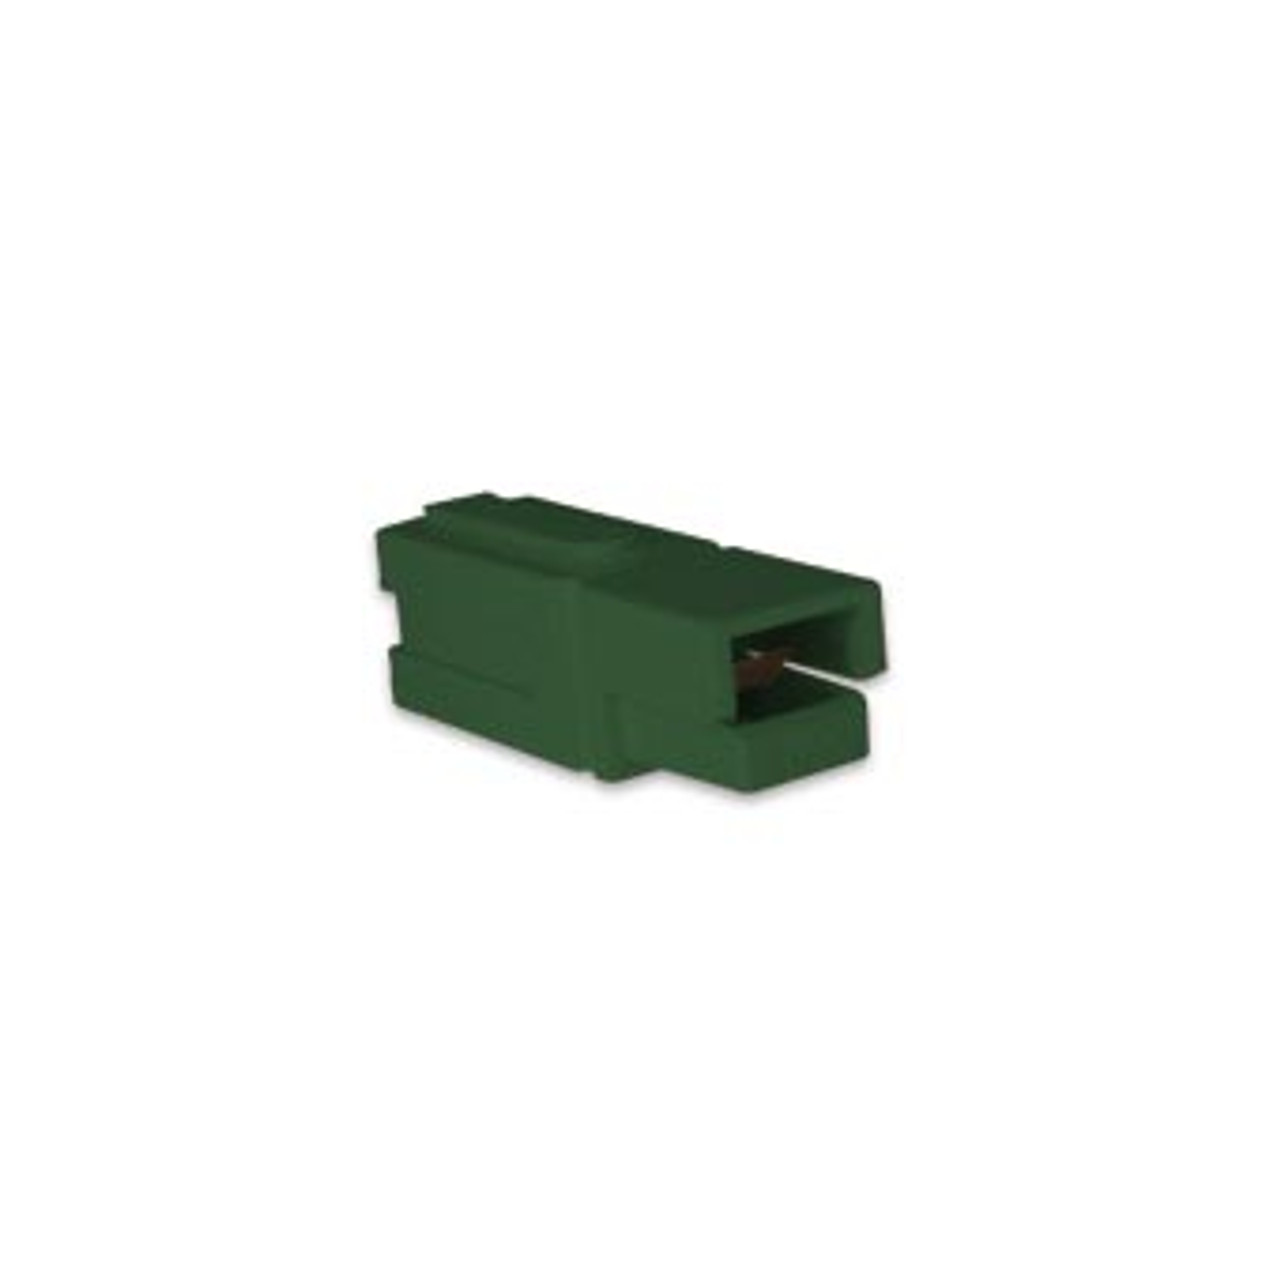 30AMP HOUSING GREEN POWER POLE